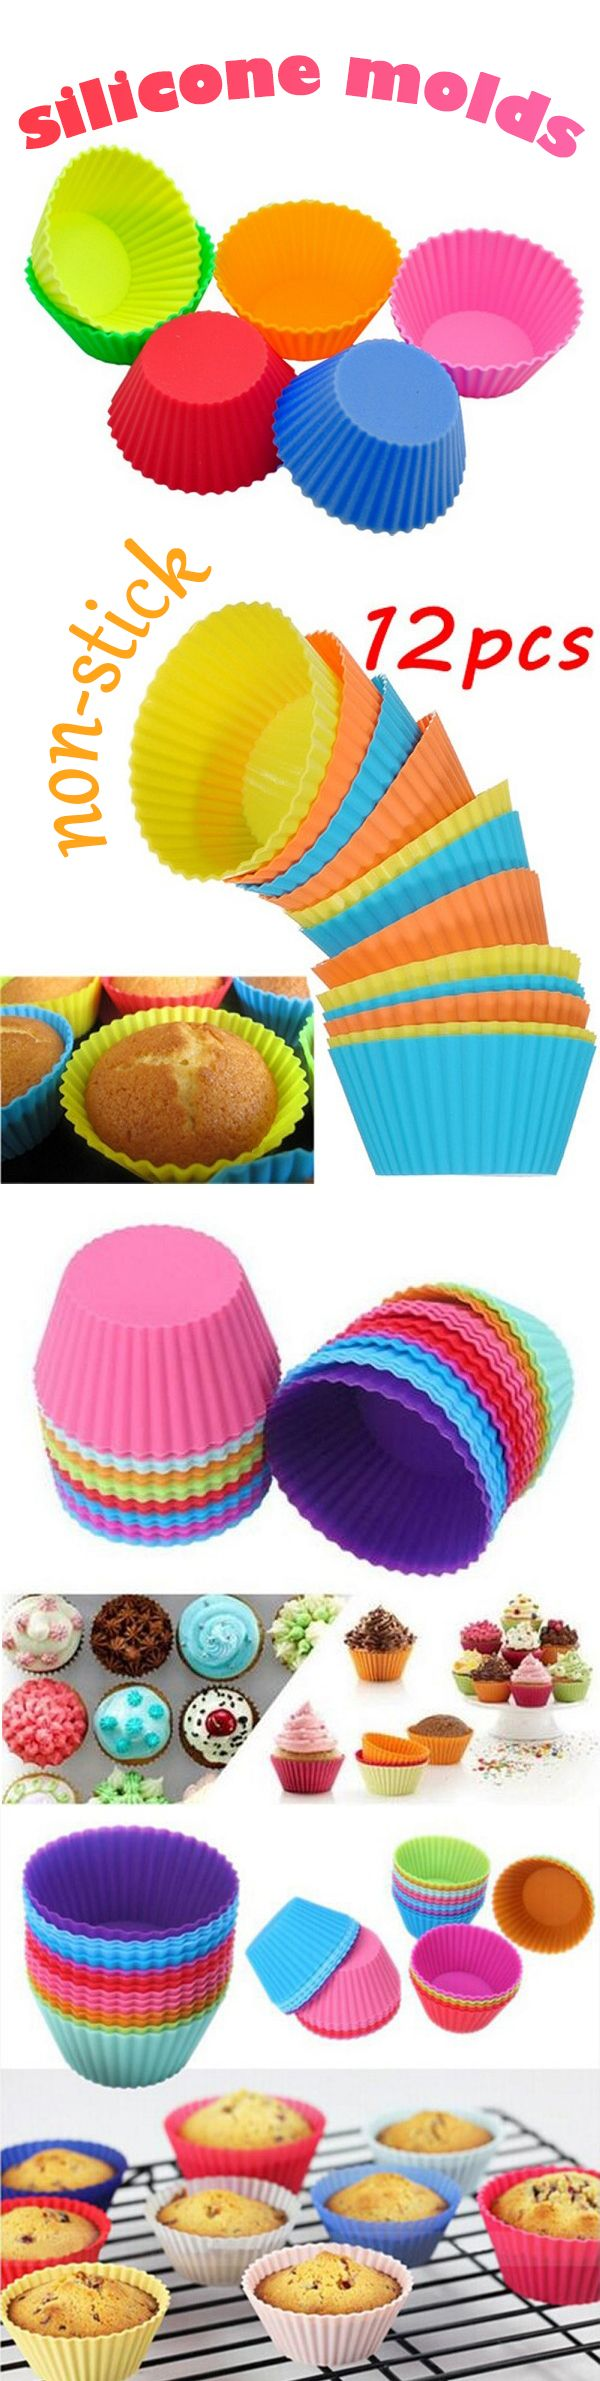 silicone baking molds for cupcakes or muffins .. non-stick, easily cleaned, reusable, and healthy,,,